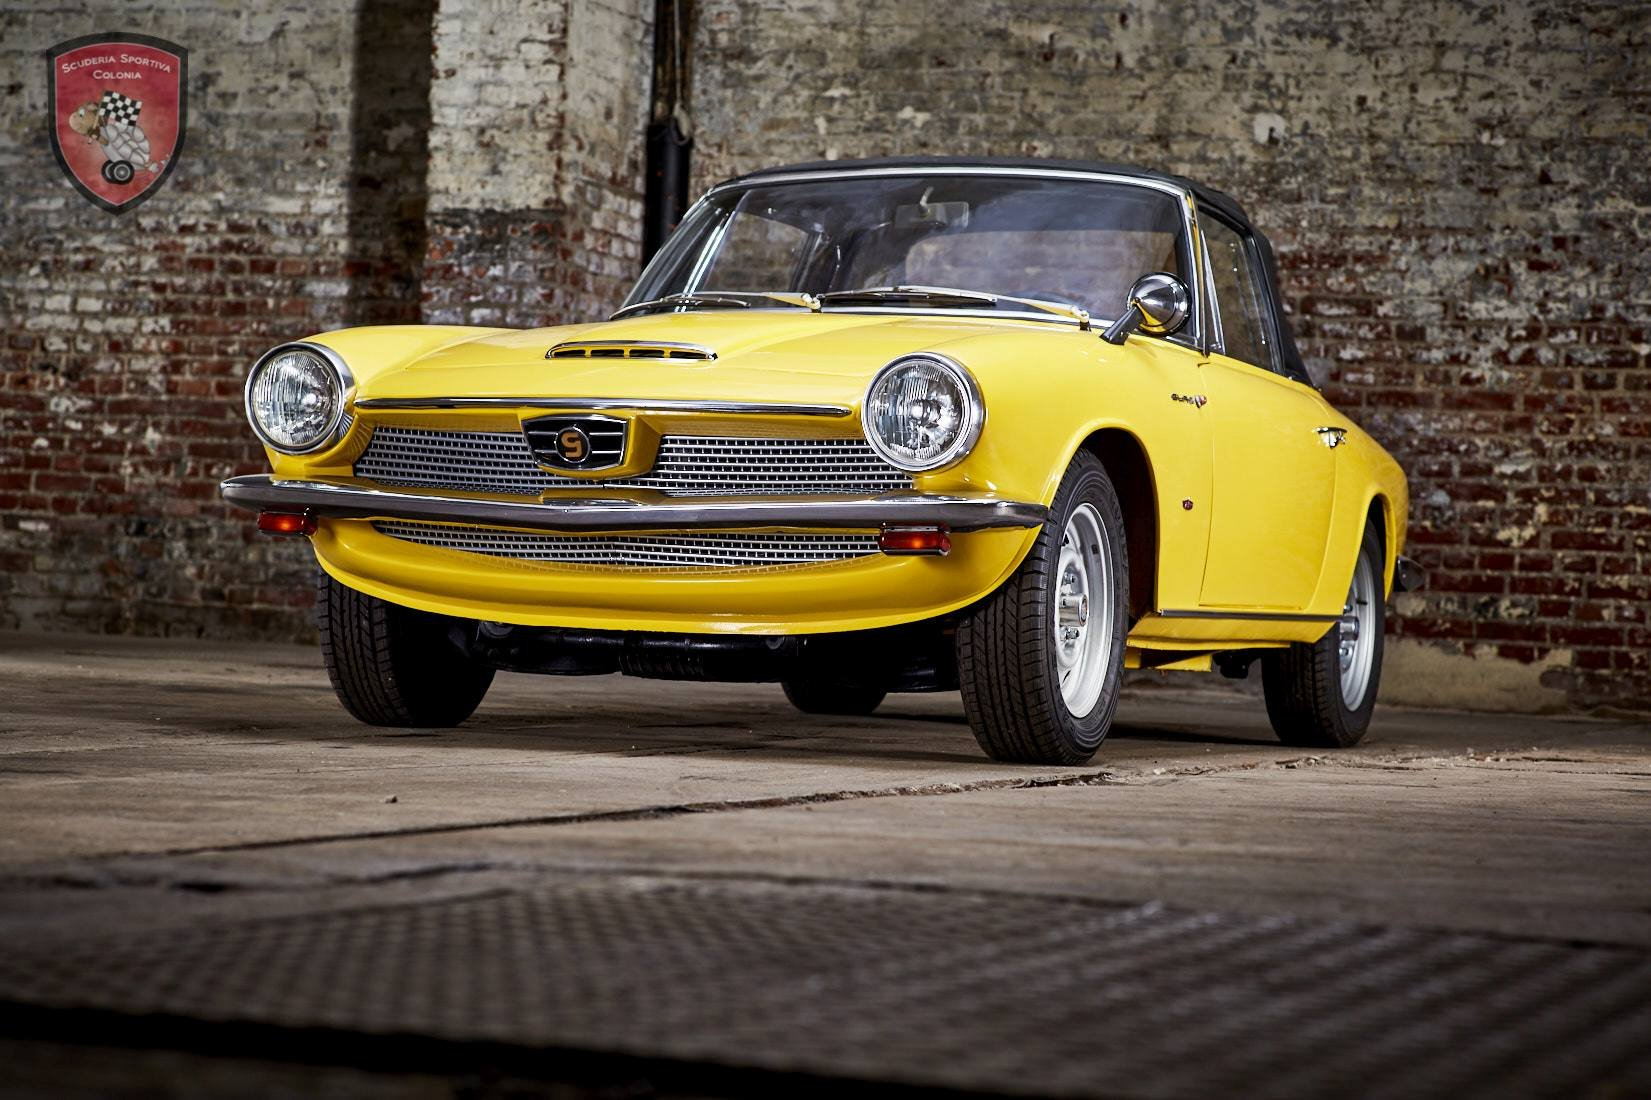 1966 GLAS GT 1700 cabriolet  For Sale (picture 1 of 6)